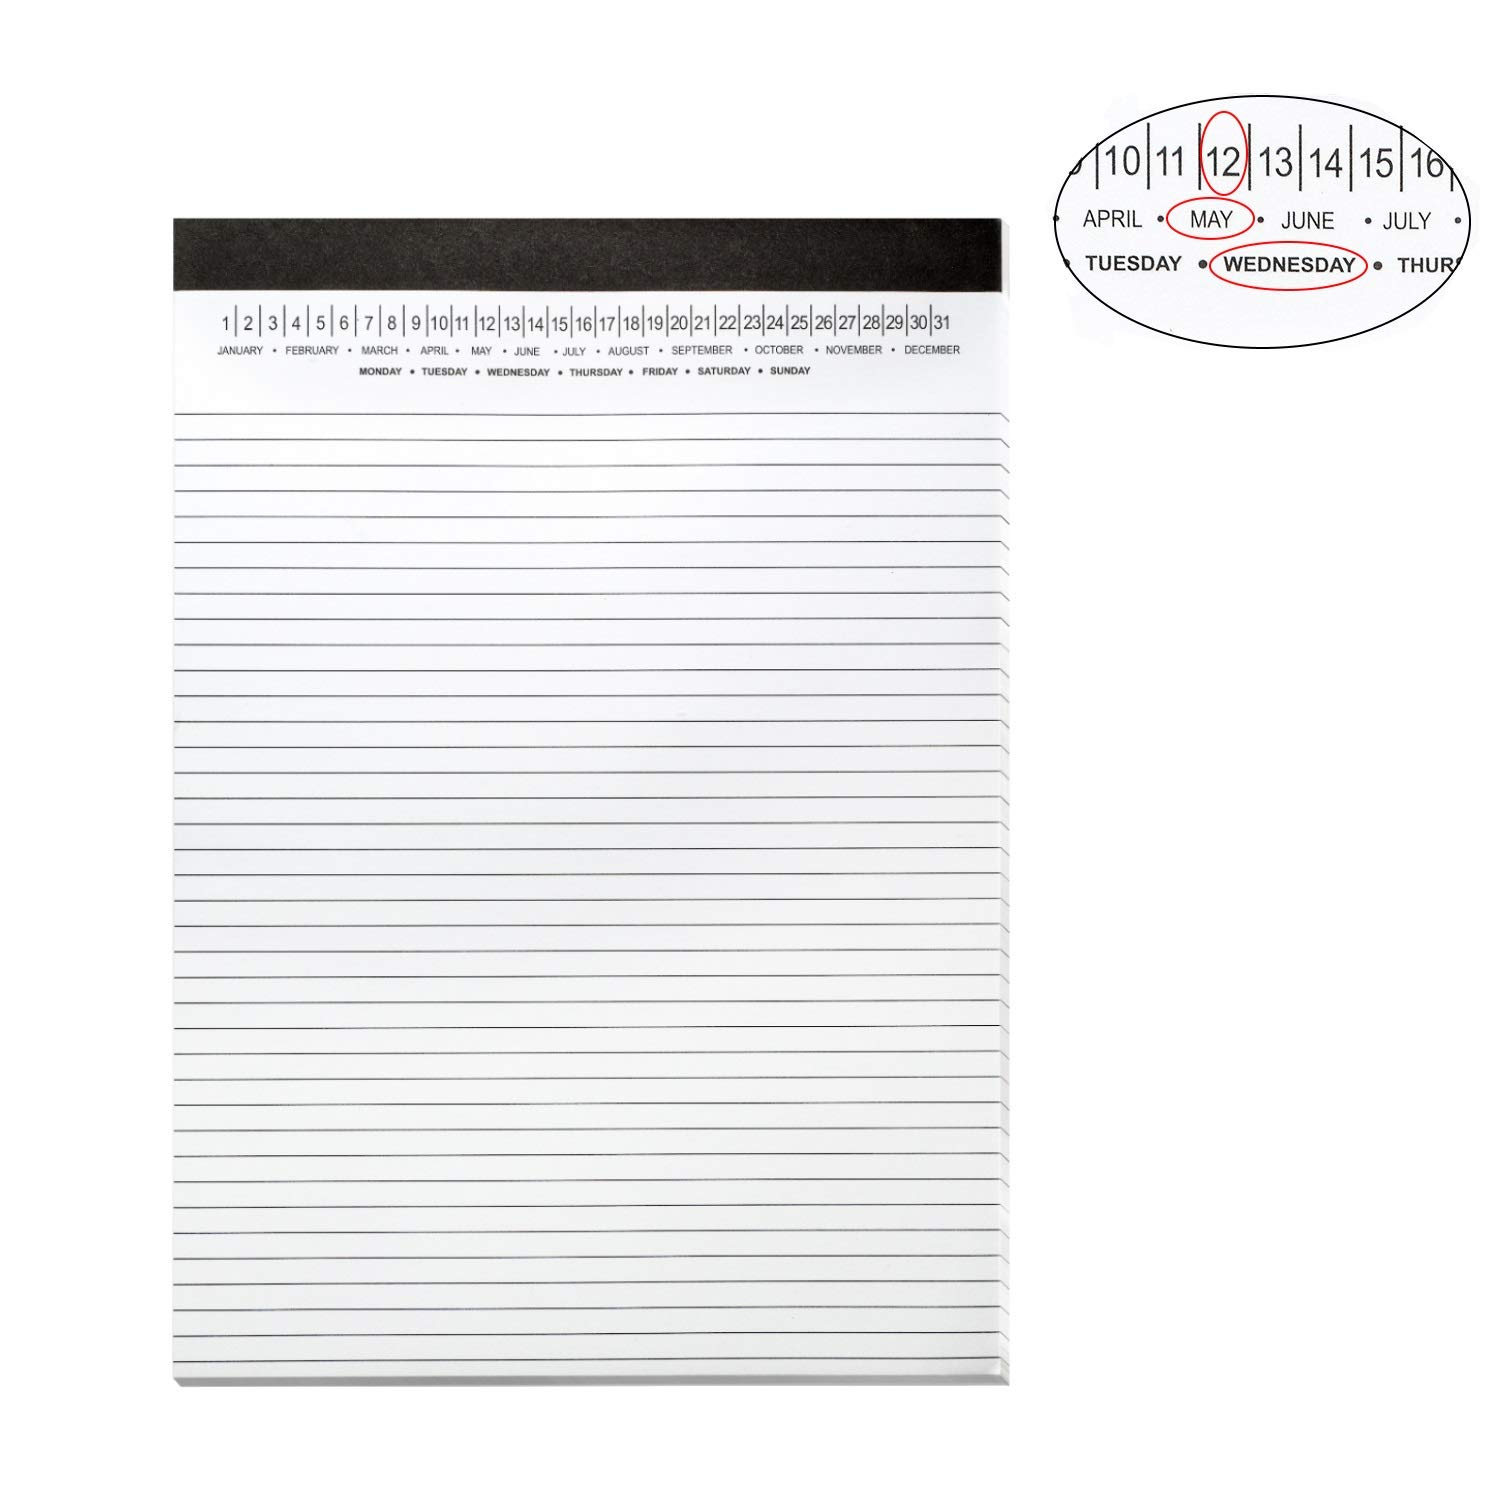 Legal Pads 8.5 x 11 with Date on Top, Narrow Ruled, White Note Pads College Ruled Writing Tablets for Office, School, 50 Sheets, 3 Pack by Mymazn